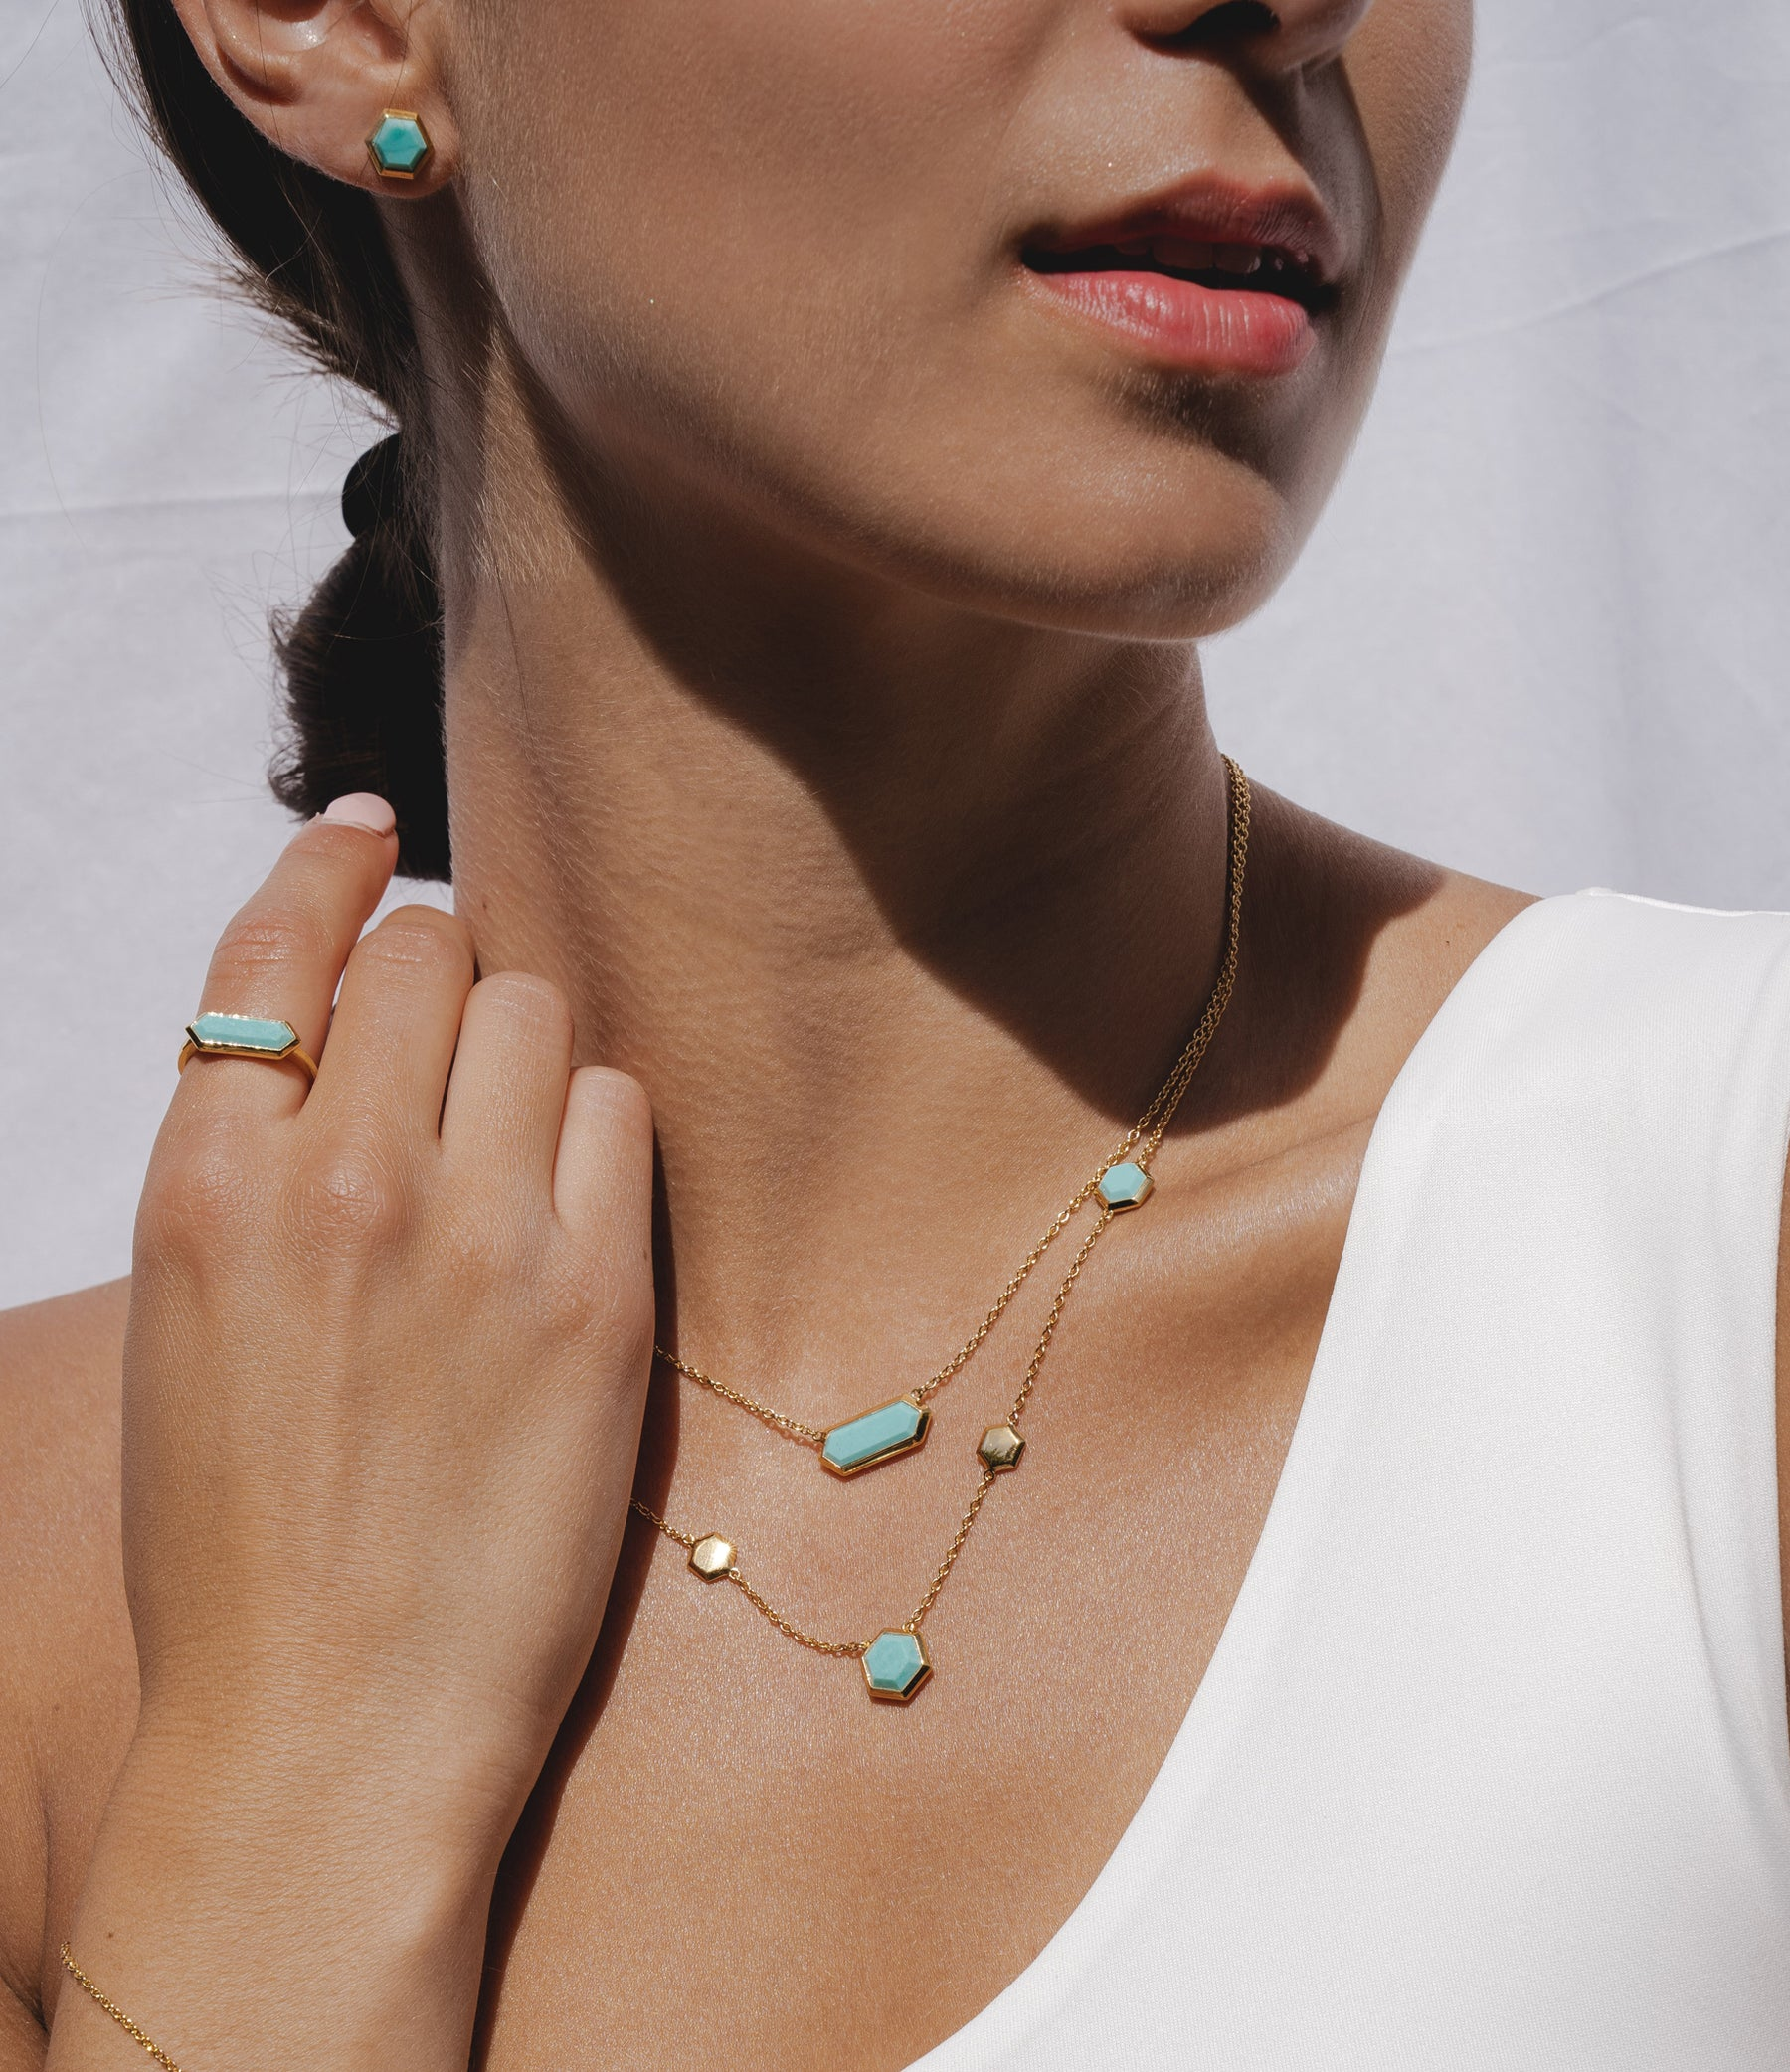 Turquoise jewelry | Turquoise rings, earrings, necklaces & bracelets